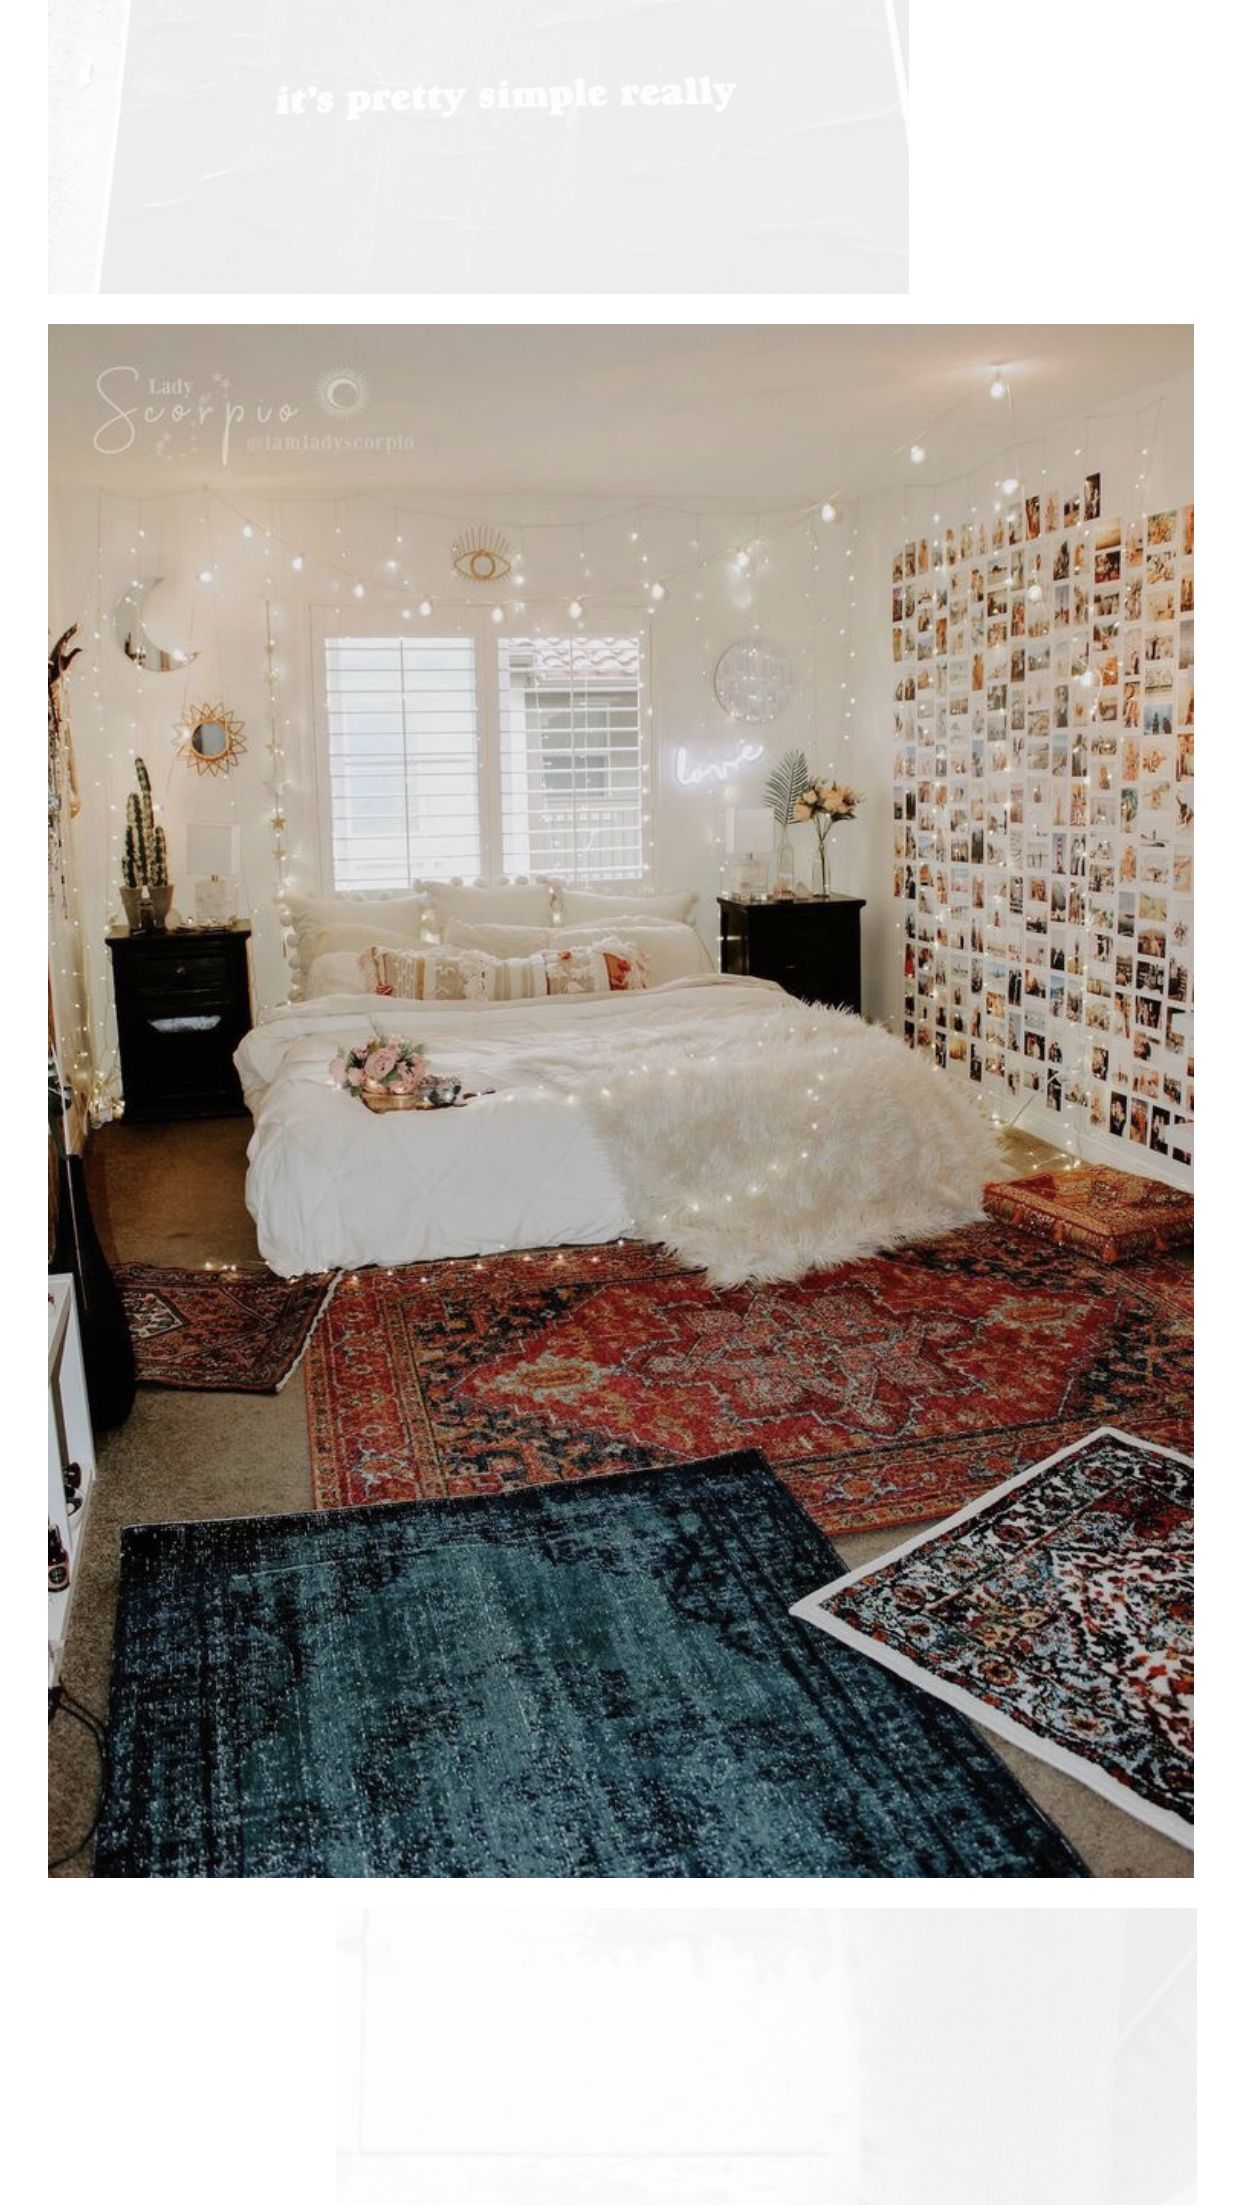 Epingle Par Aida Sur Room House Goals Idee Chambre Idee Deco